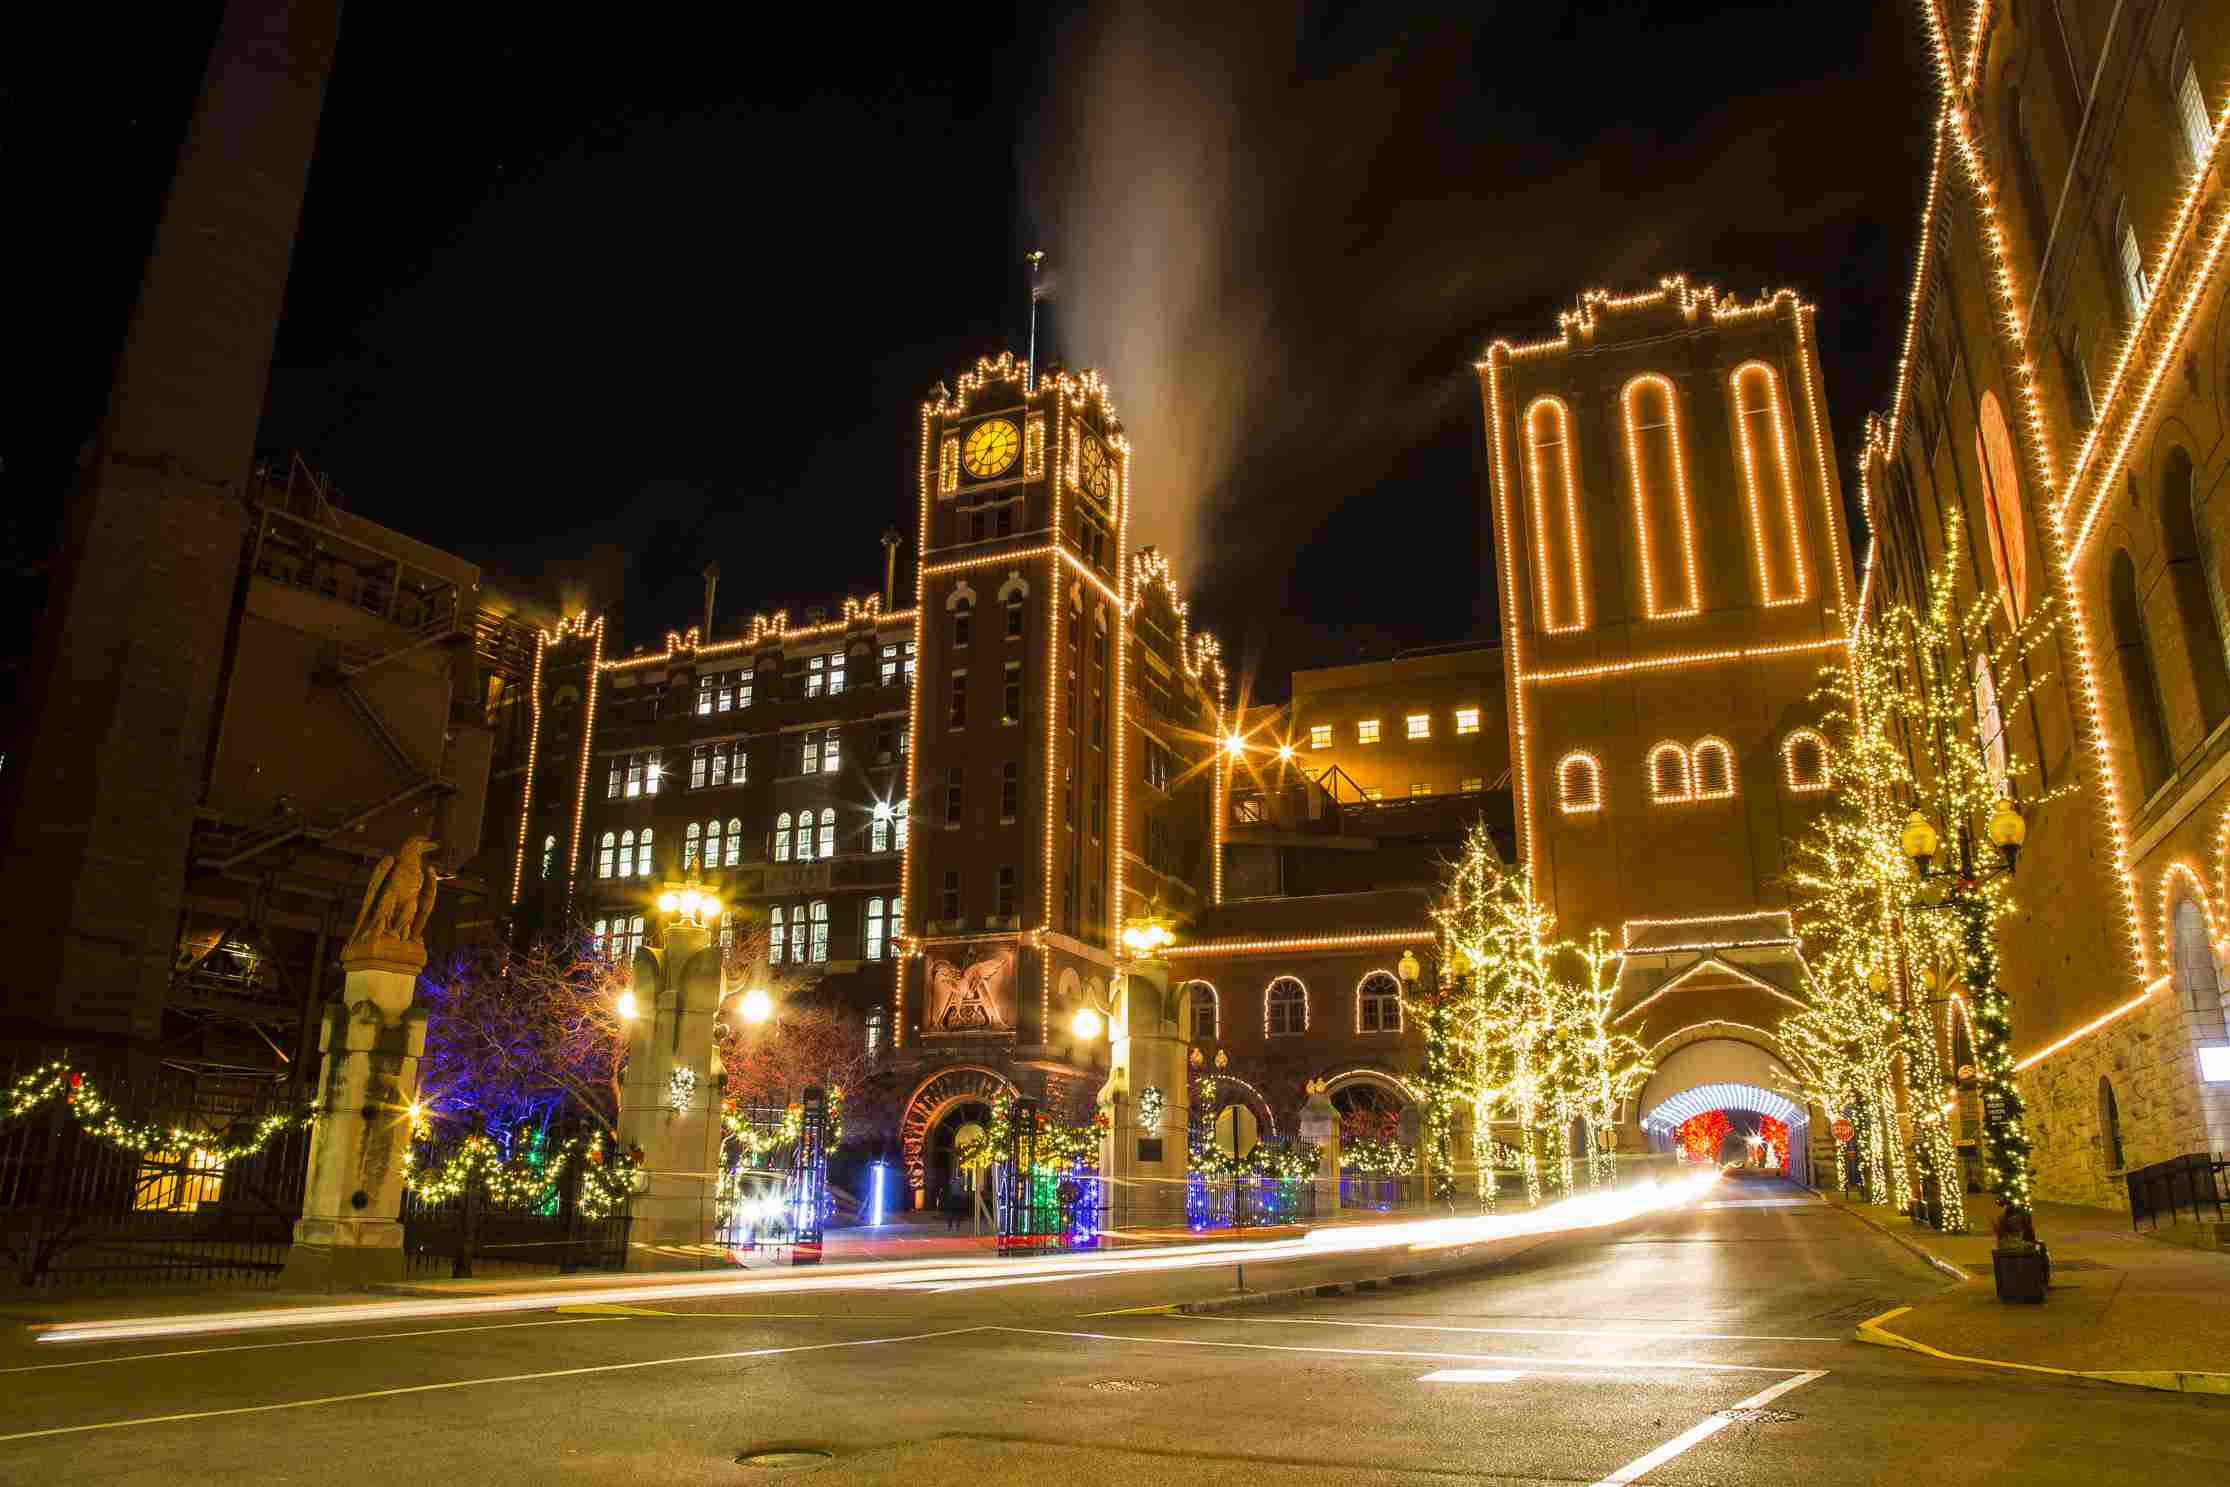 The Best Christmas Light Displays in St Louis